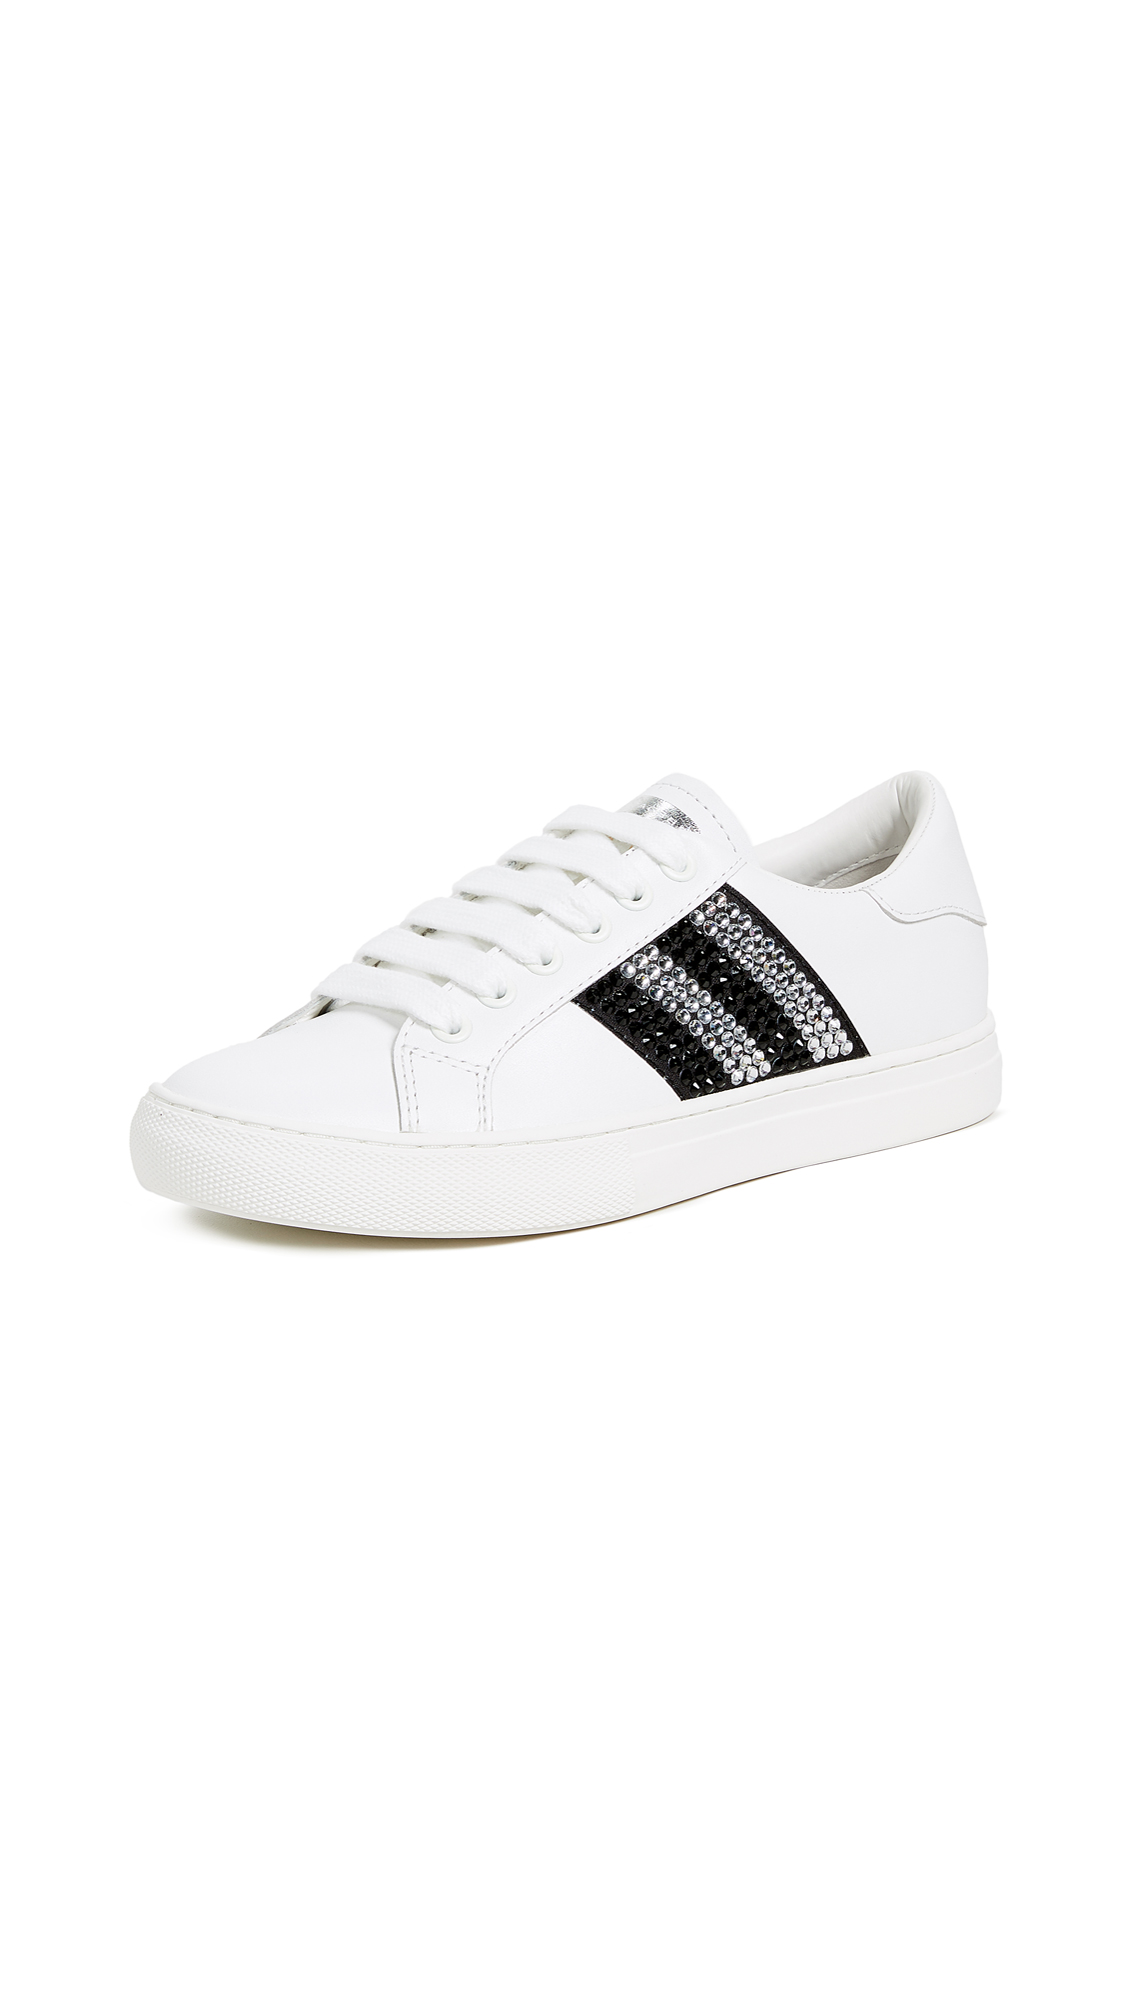 Marc Jacobs Empire Strass Low Top Sneakers - White/Black Multi